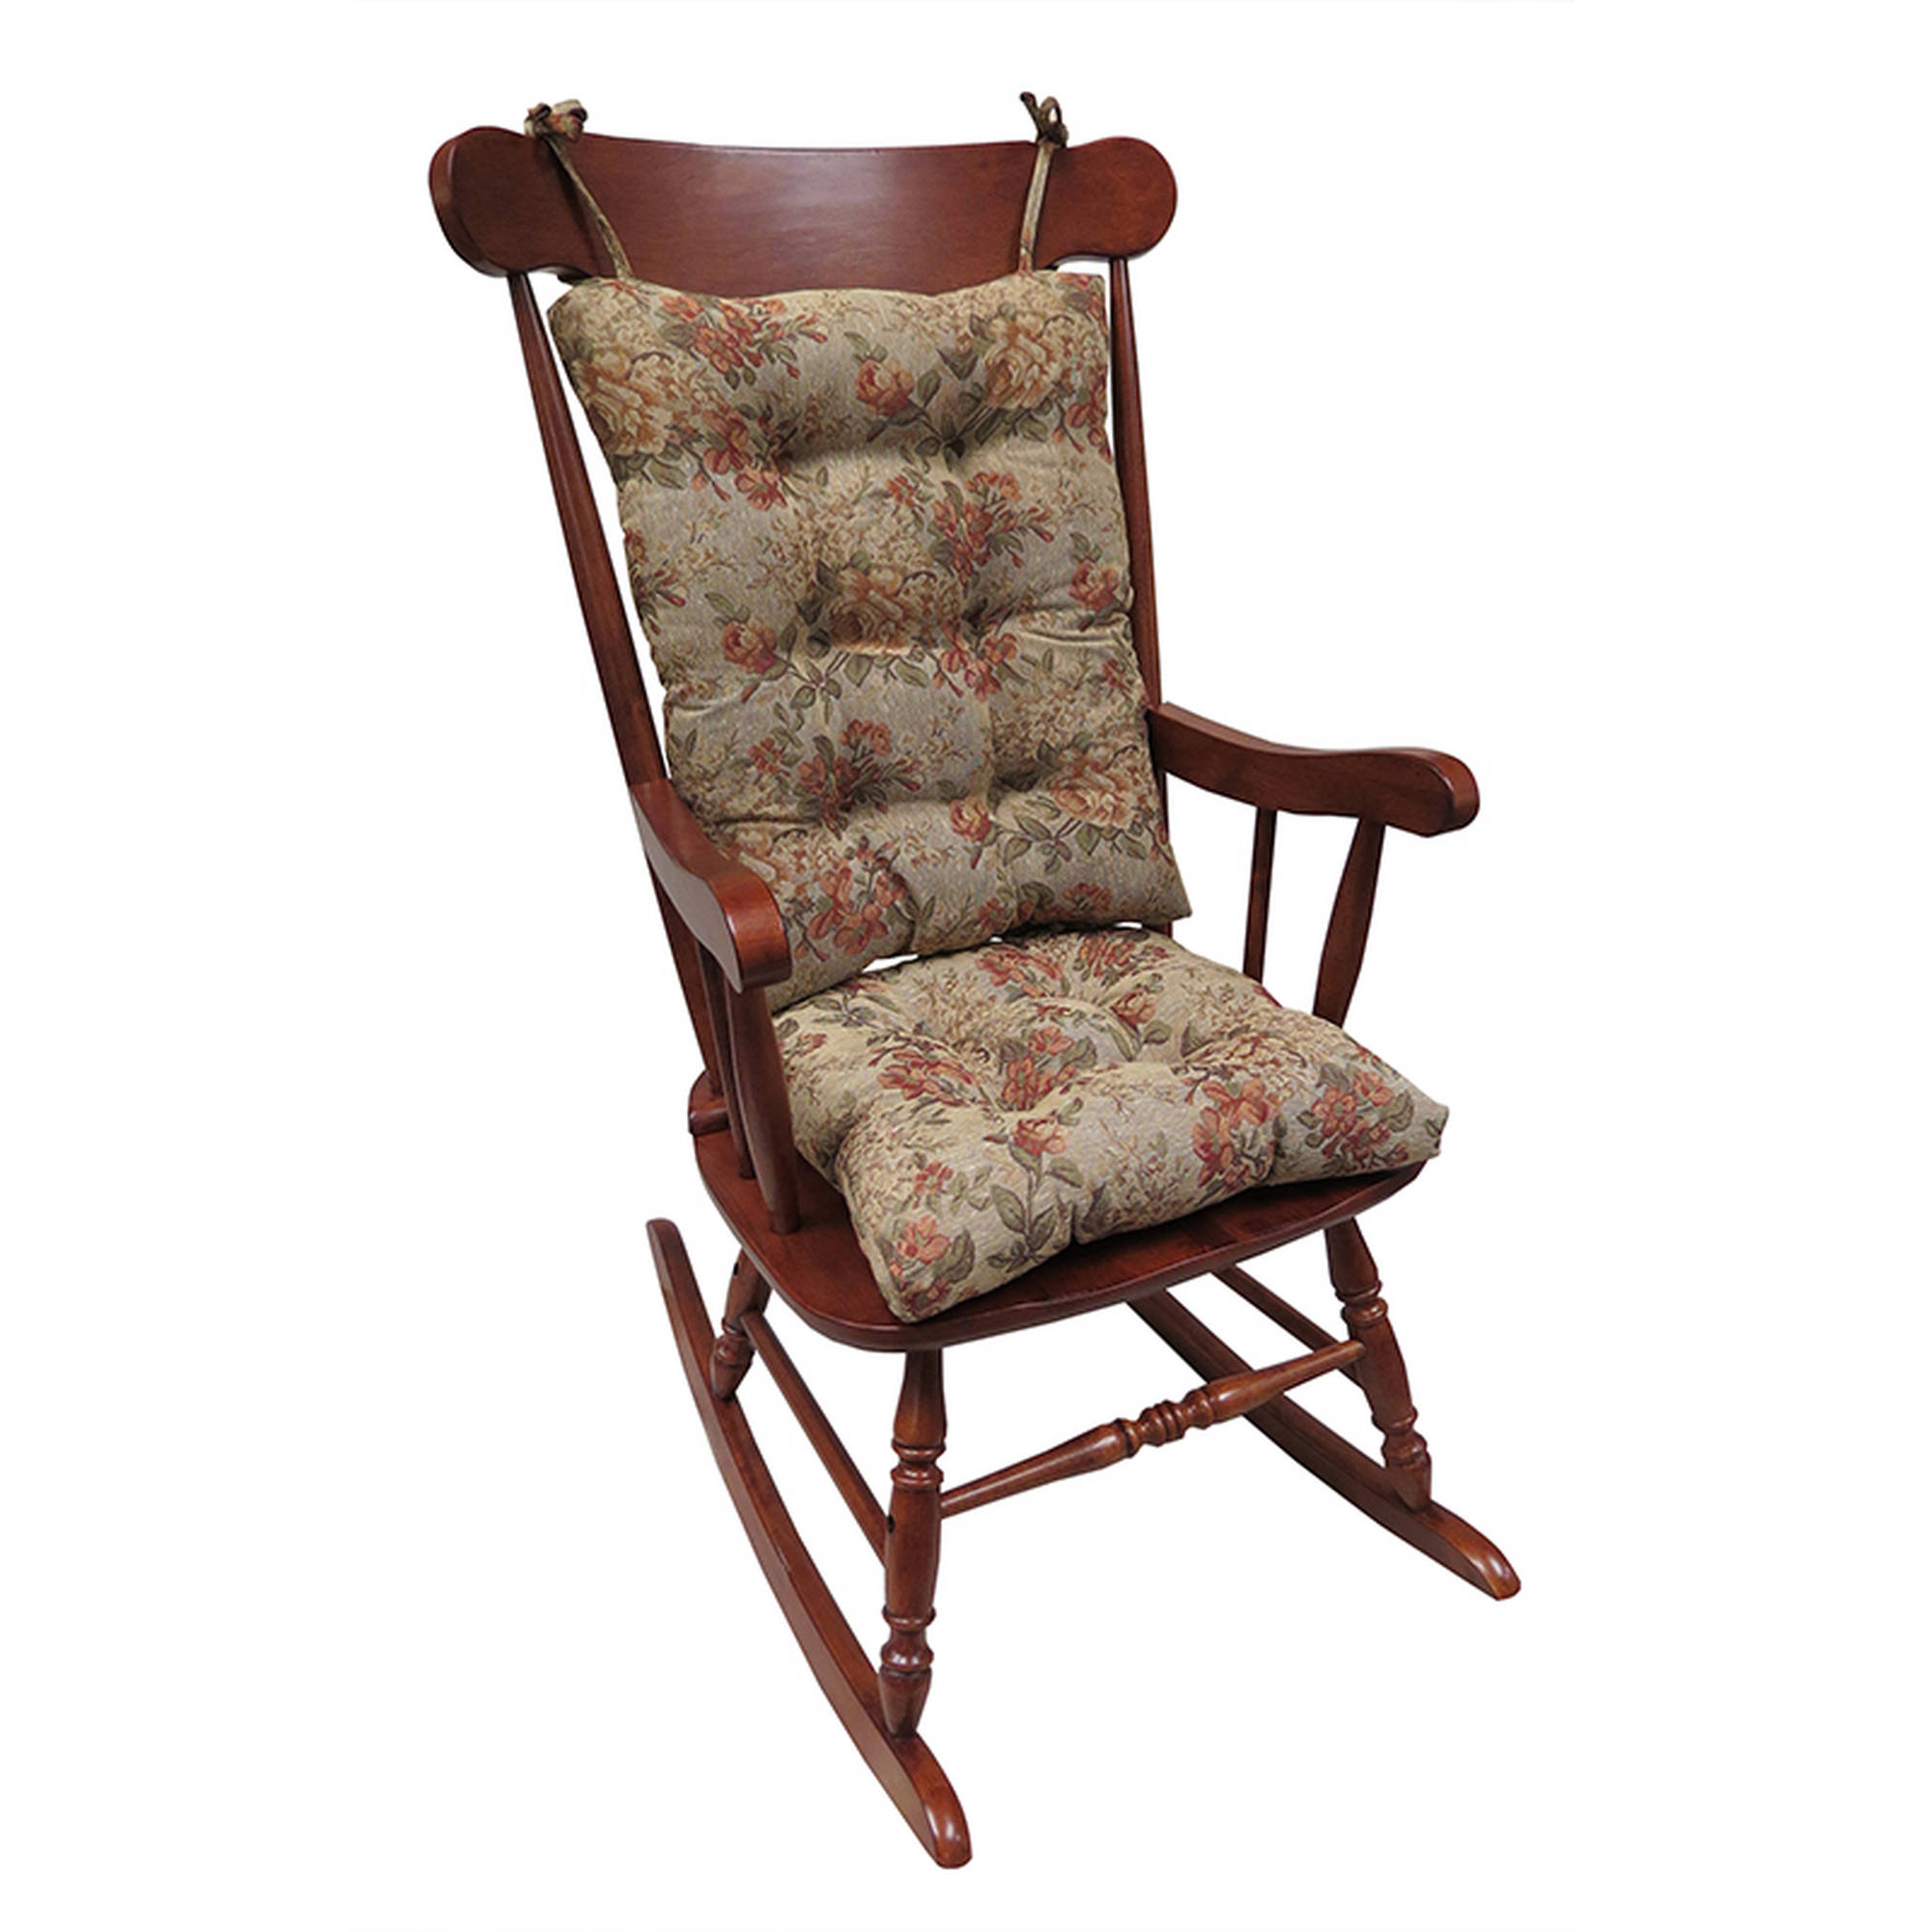 Perfect Gripper Jumbo Rocking Chair Cushions, Somerset Tapestry